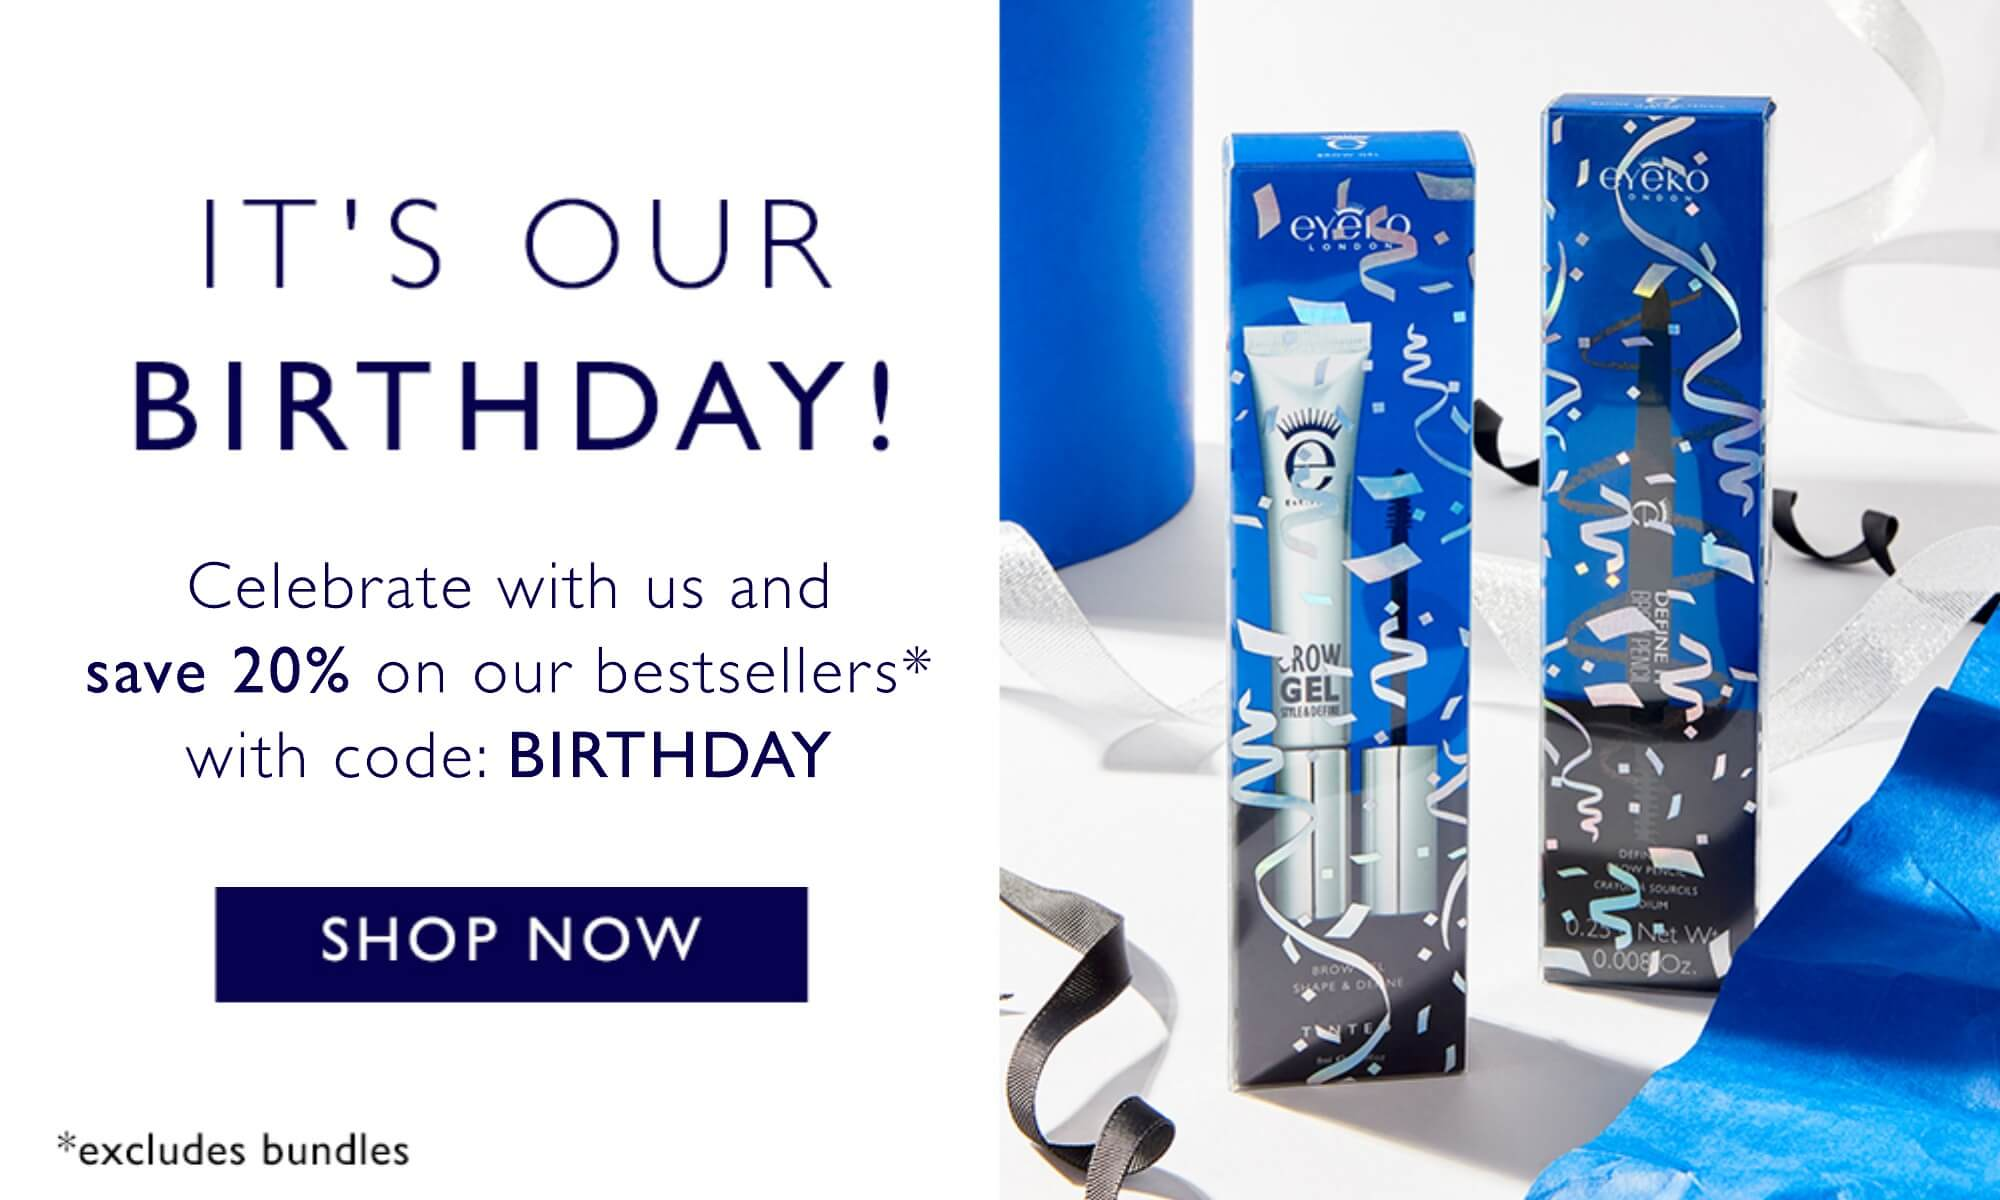 Its our birthday - celebrate with us and save 20% on our bestsellers with code: BIRTHDAY